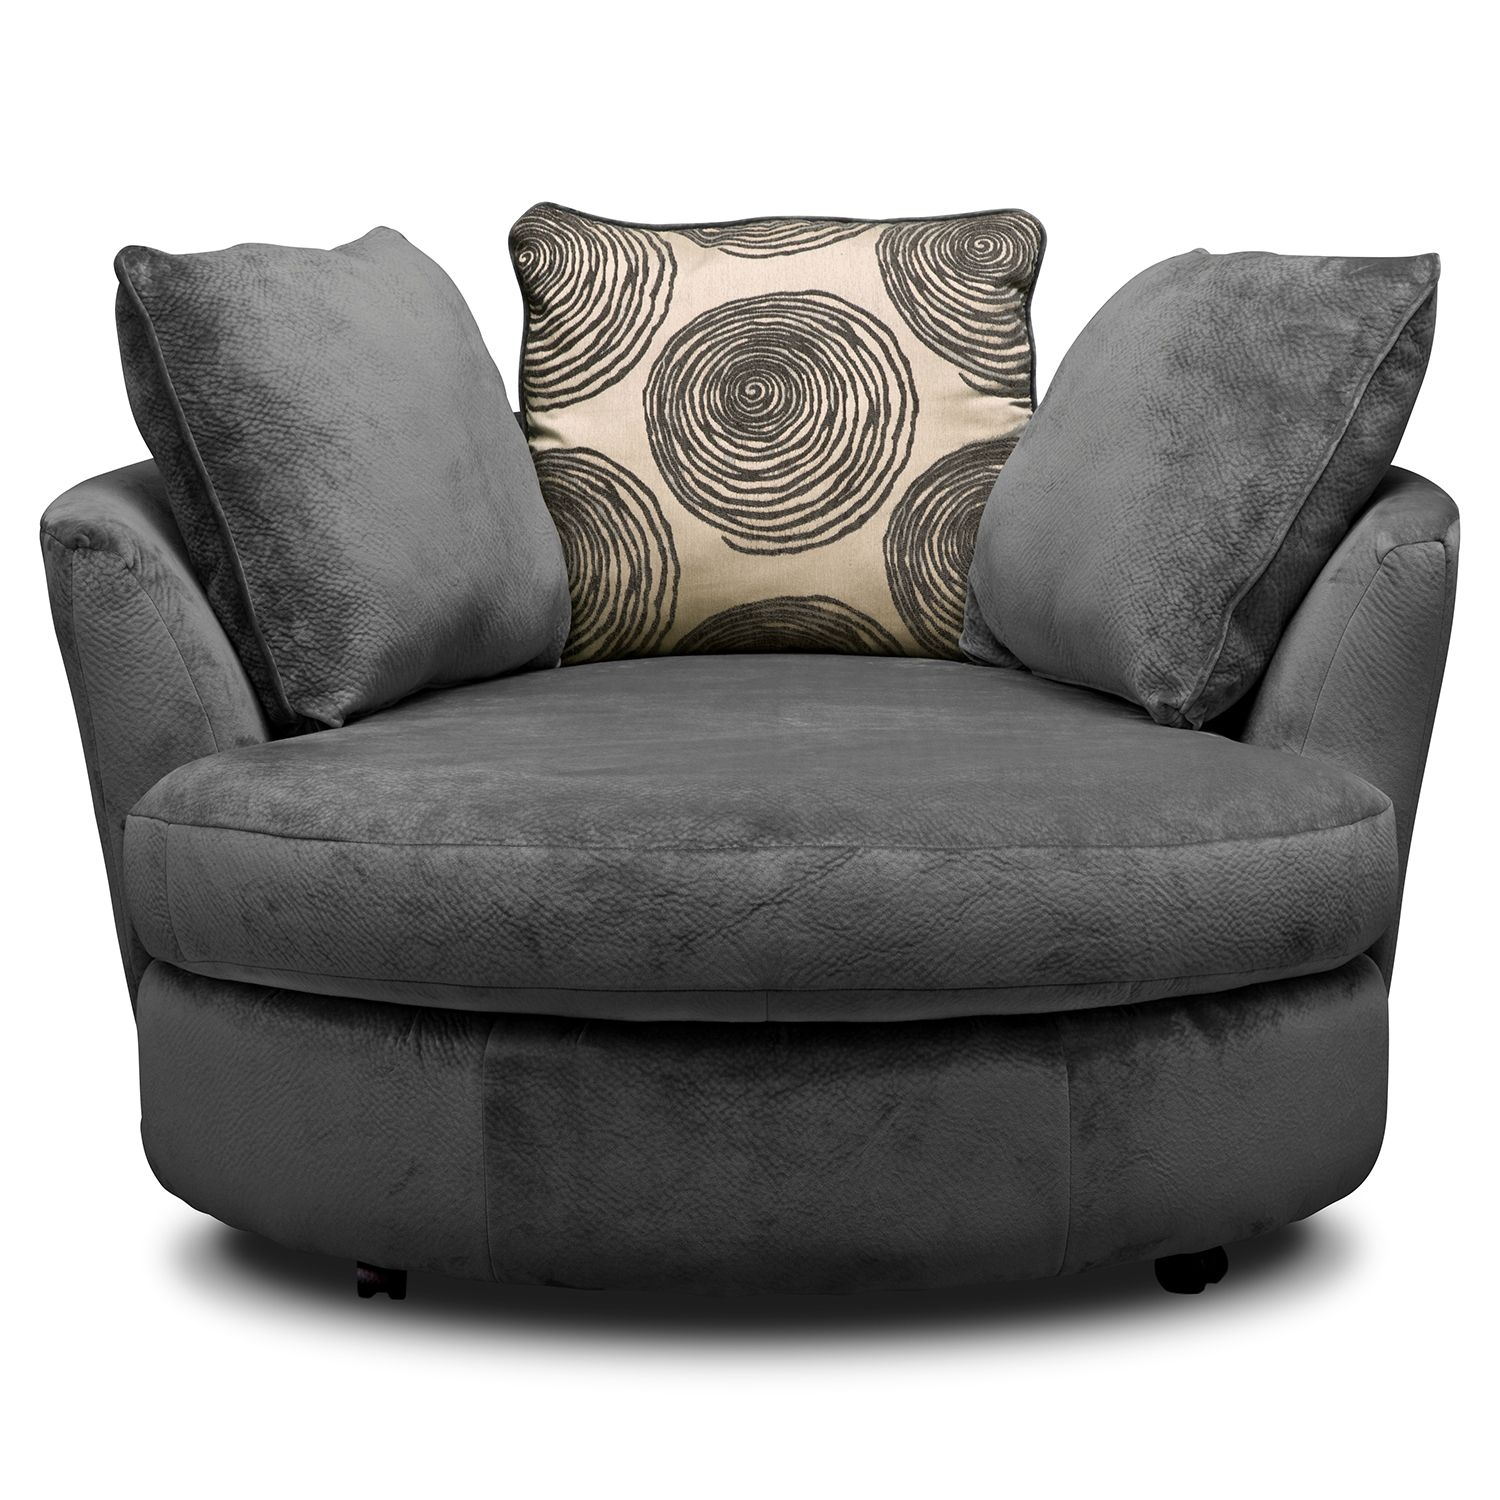 Jeanie Round Chair And A Half Home Chair Designs Inside Round Sofa Chair Living Room Furniture (Image 3 of 15)